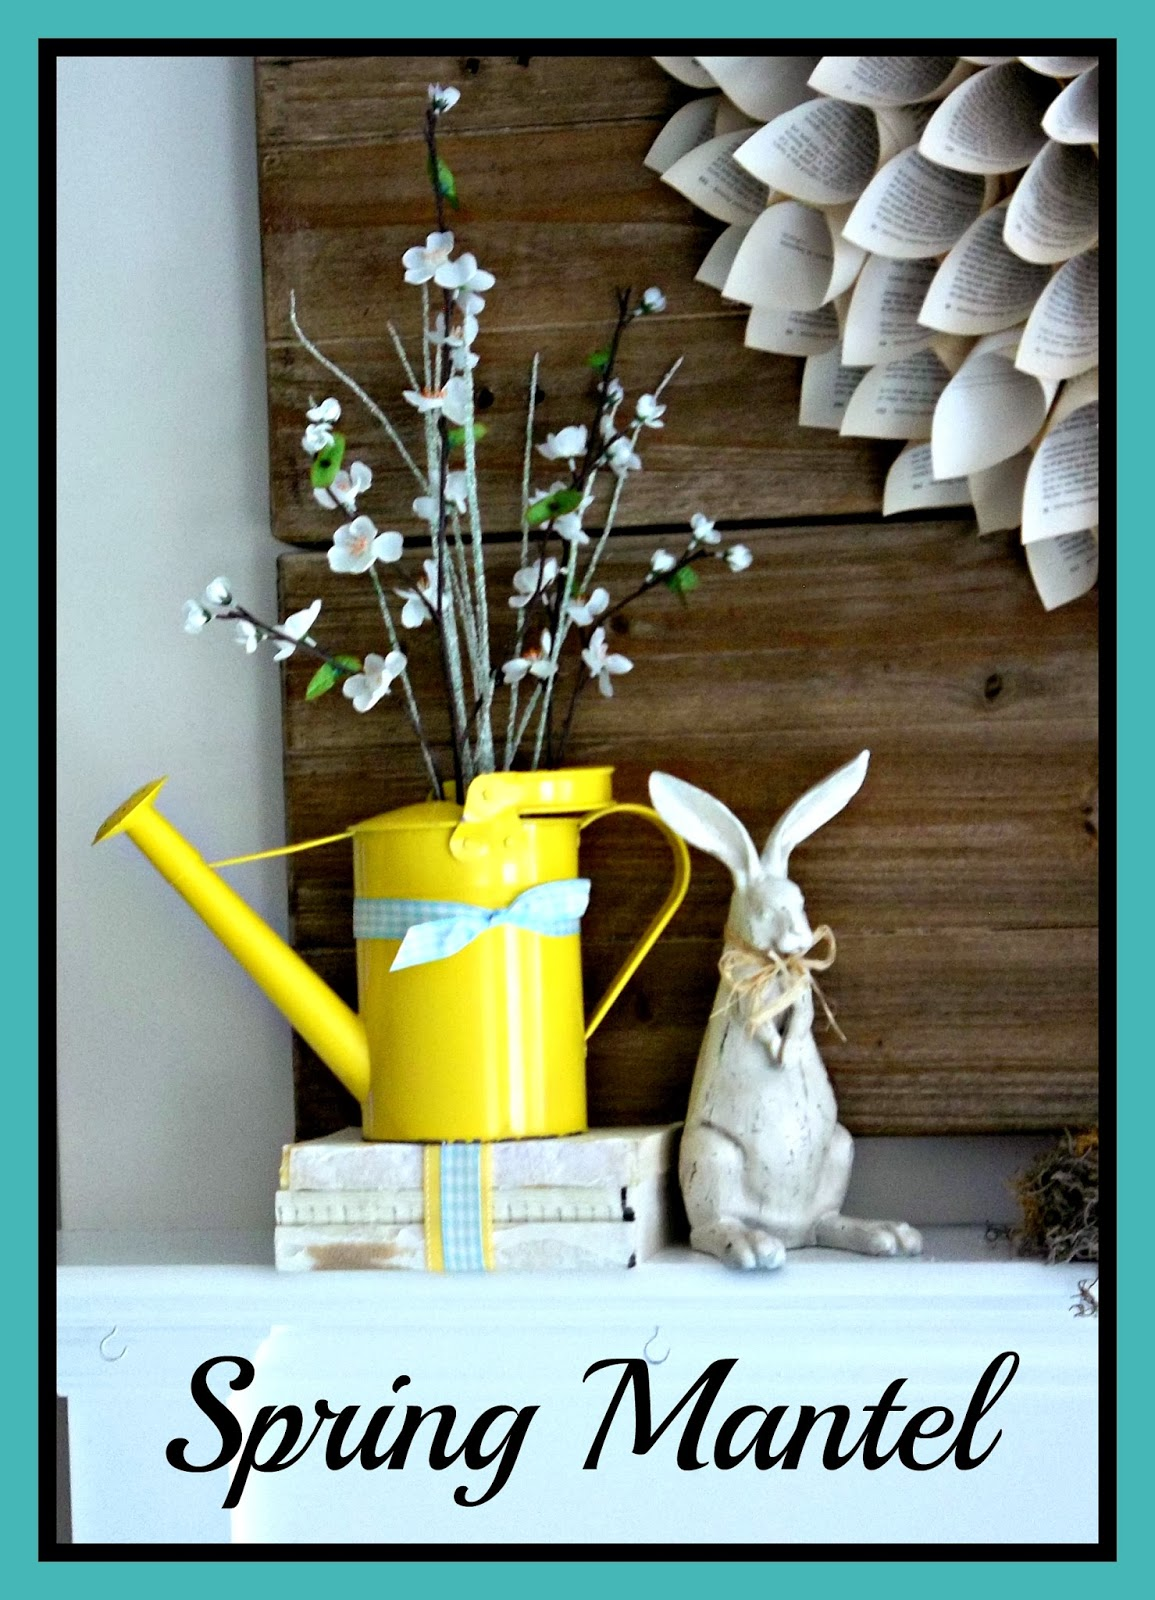 Spring Mantel - vintage rabbit and watering can